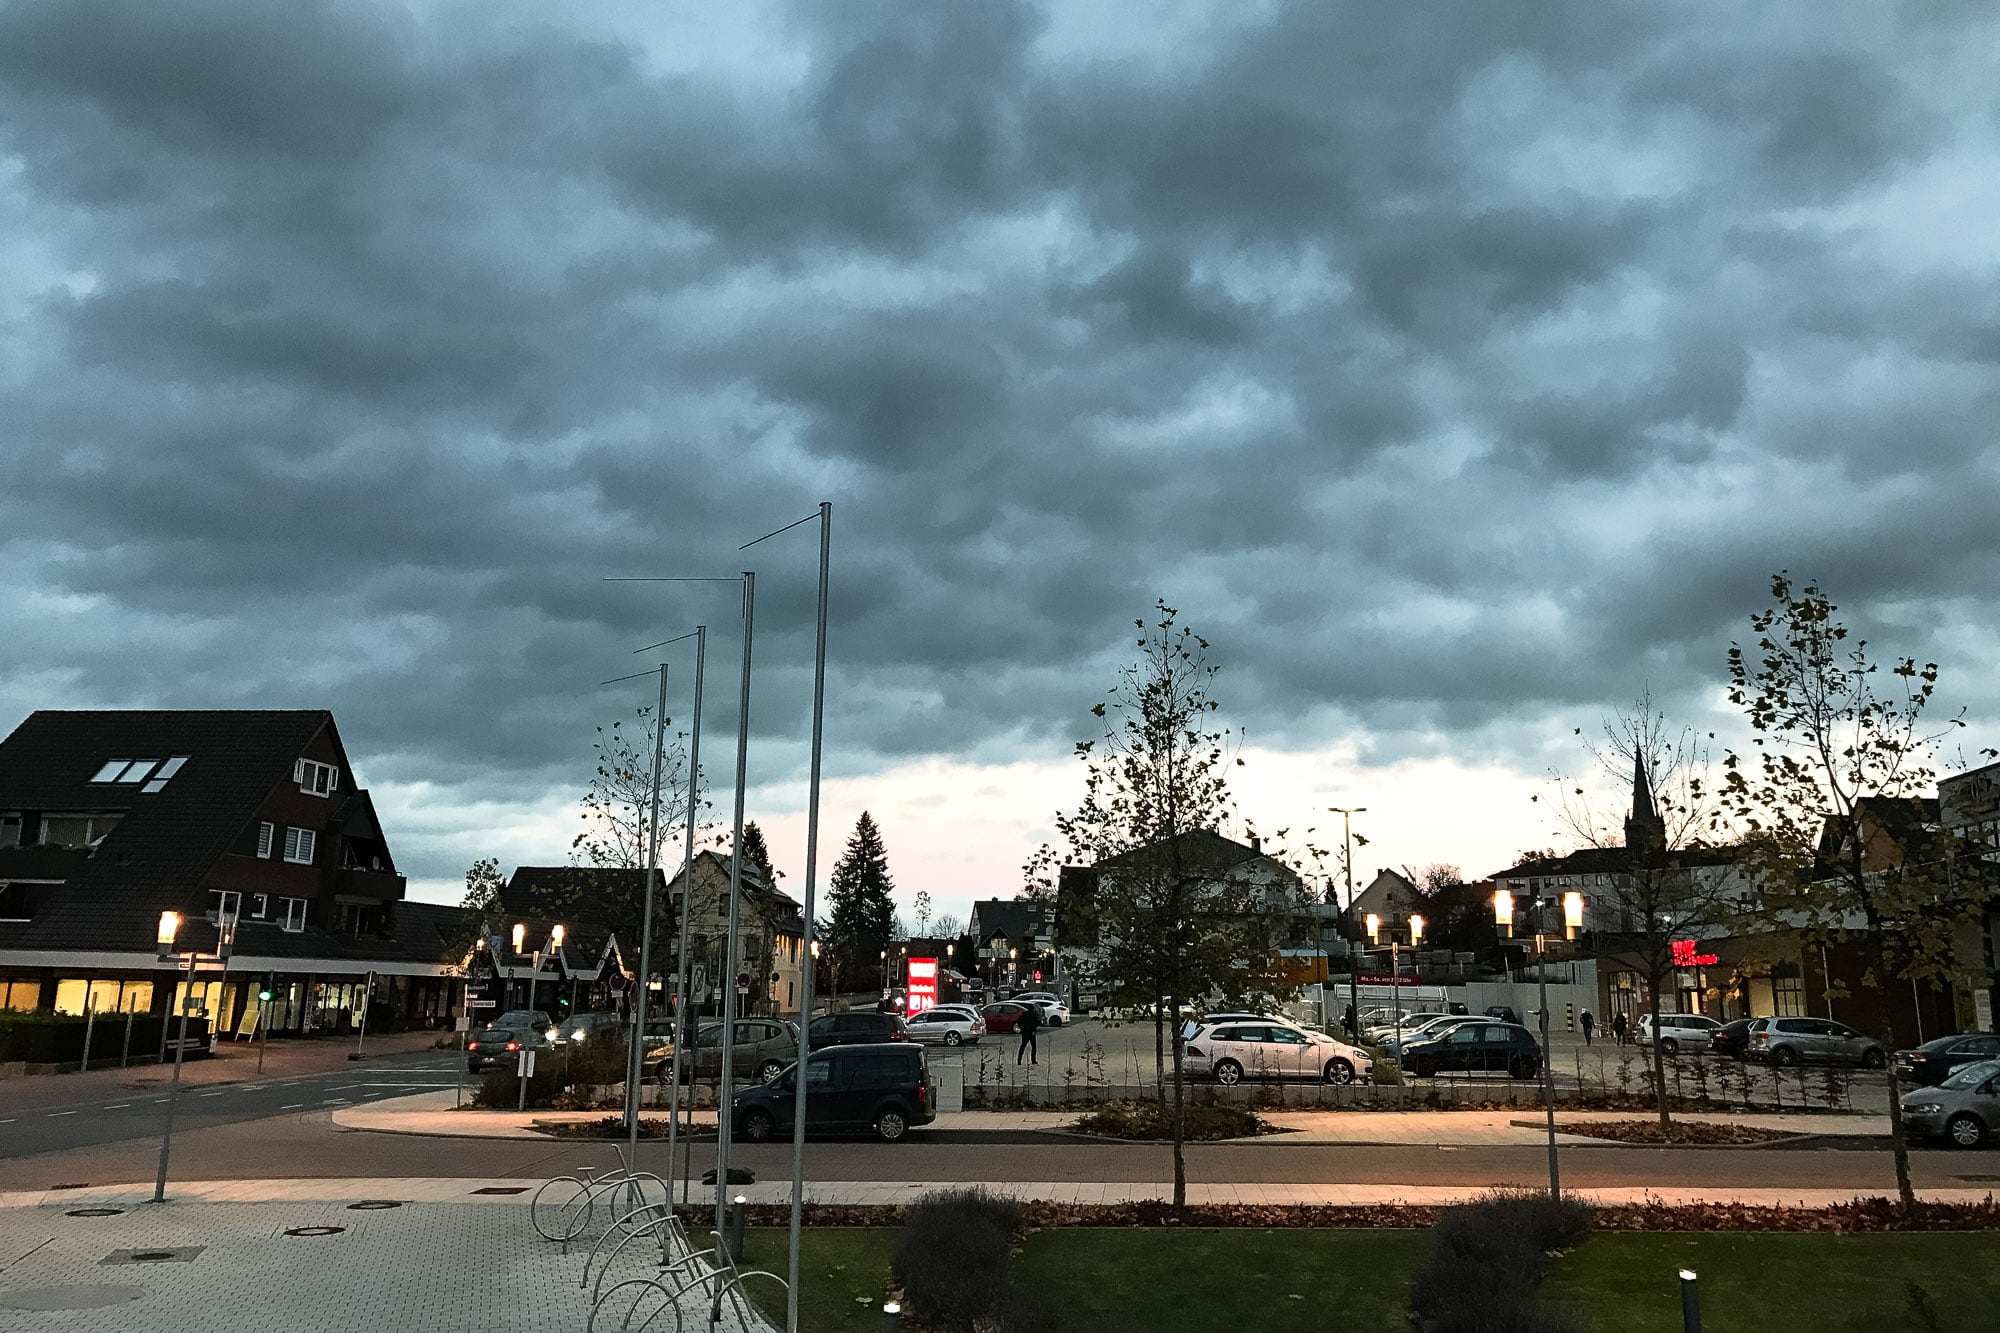 clouds over Bad Nenndorf